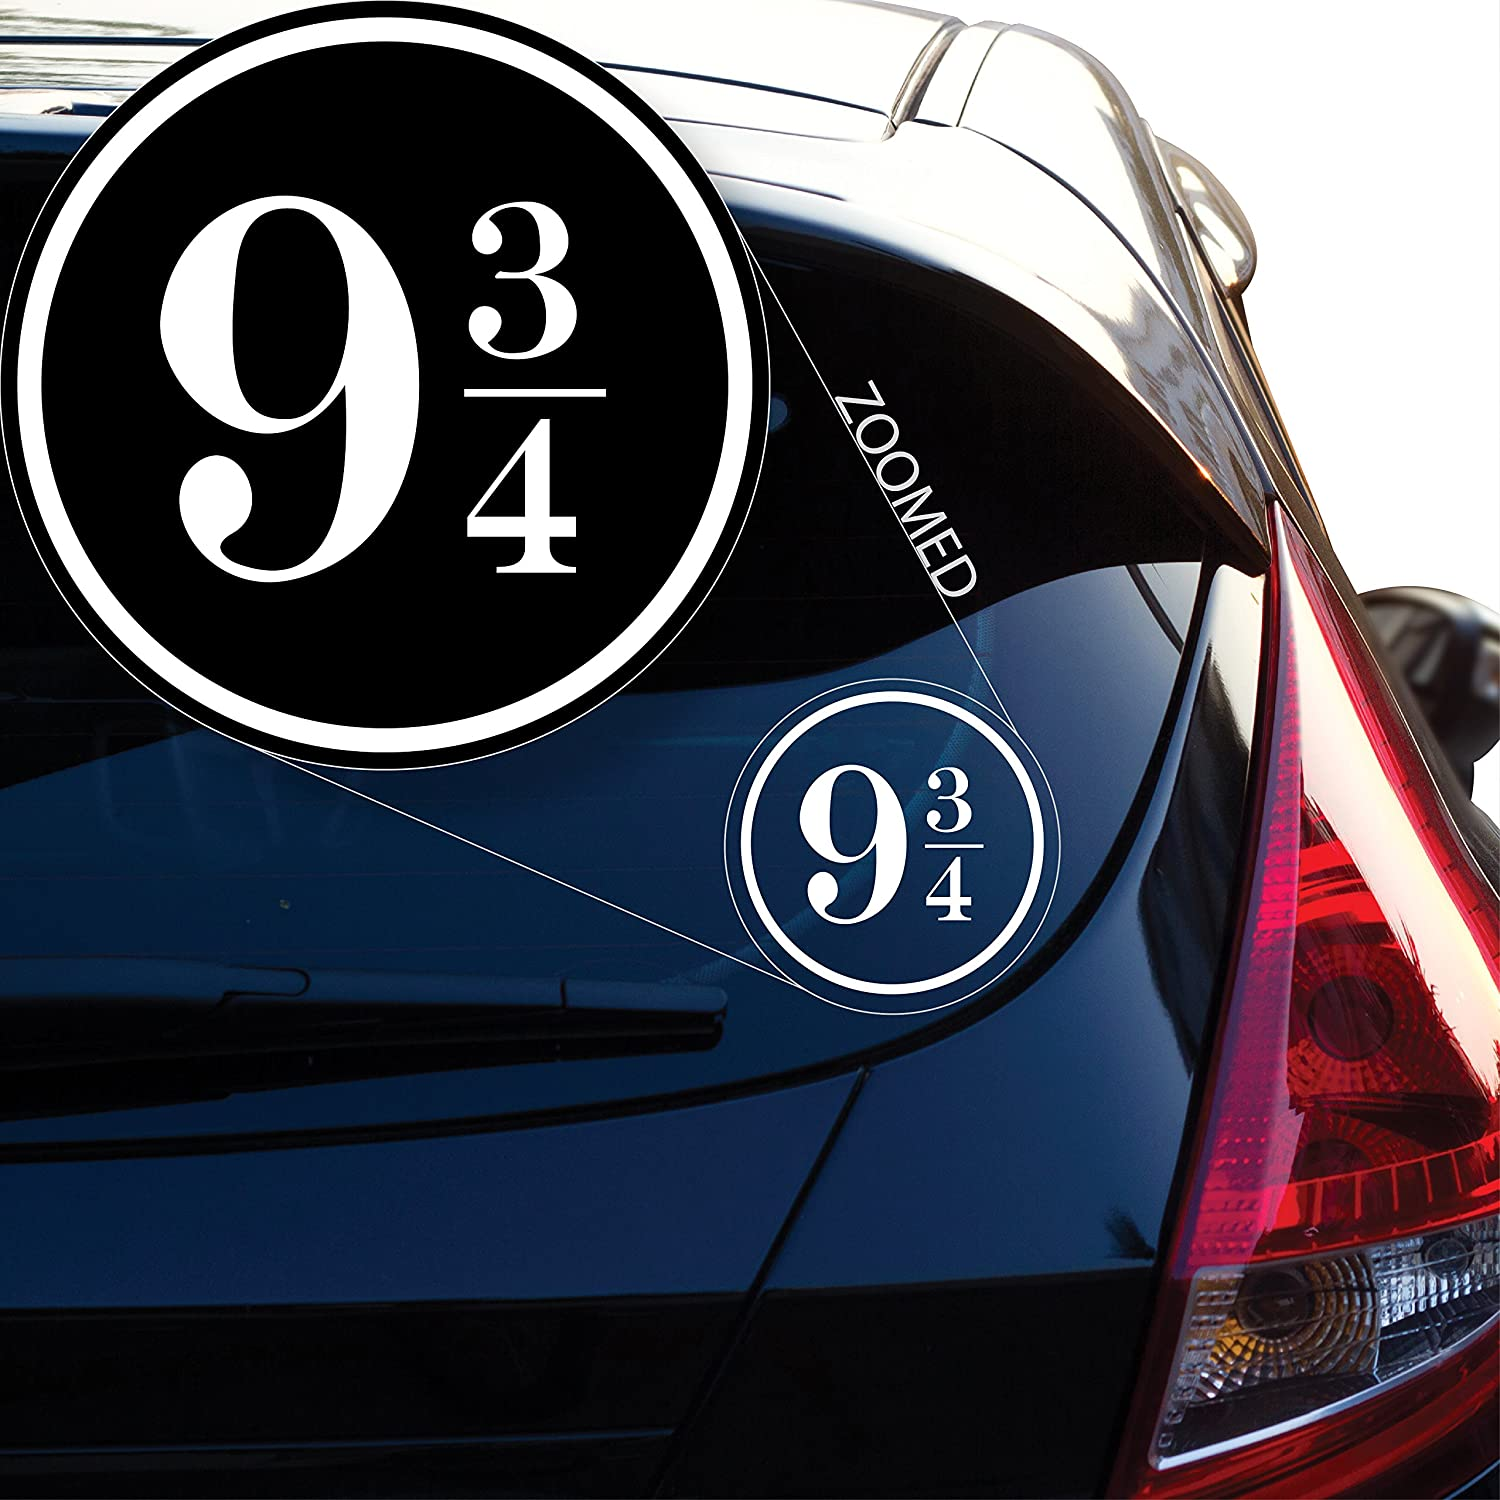 Harry Potter Inspired 9 3//4 Vinyl Decal Sticker # 828 4 x 4, Black Yoonek Graphics